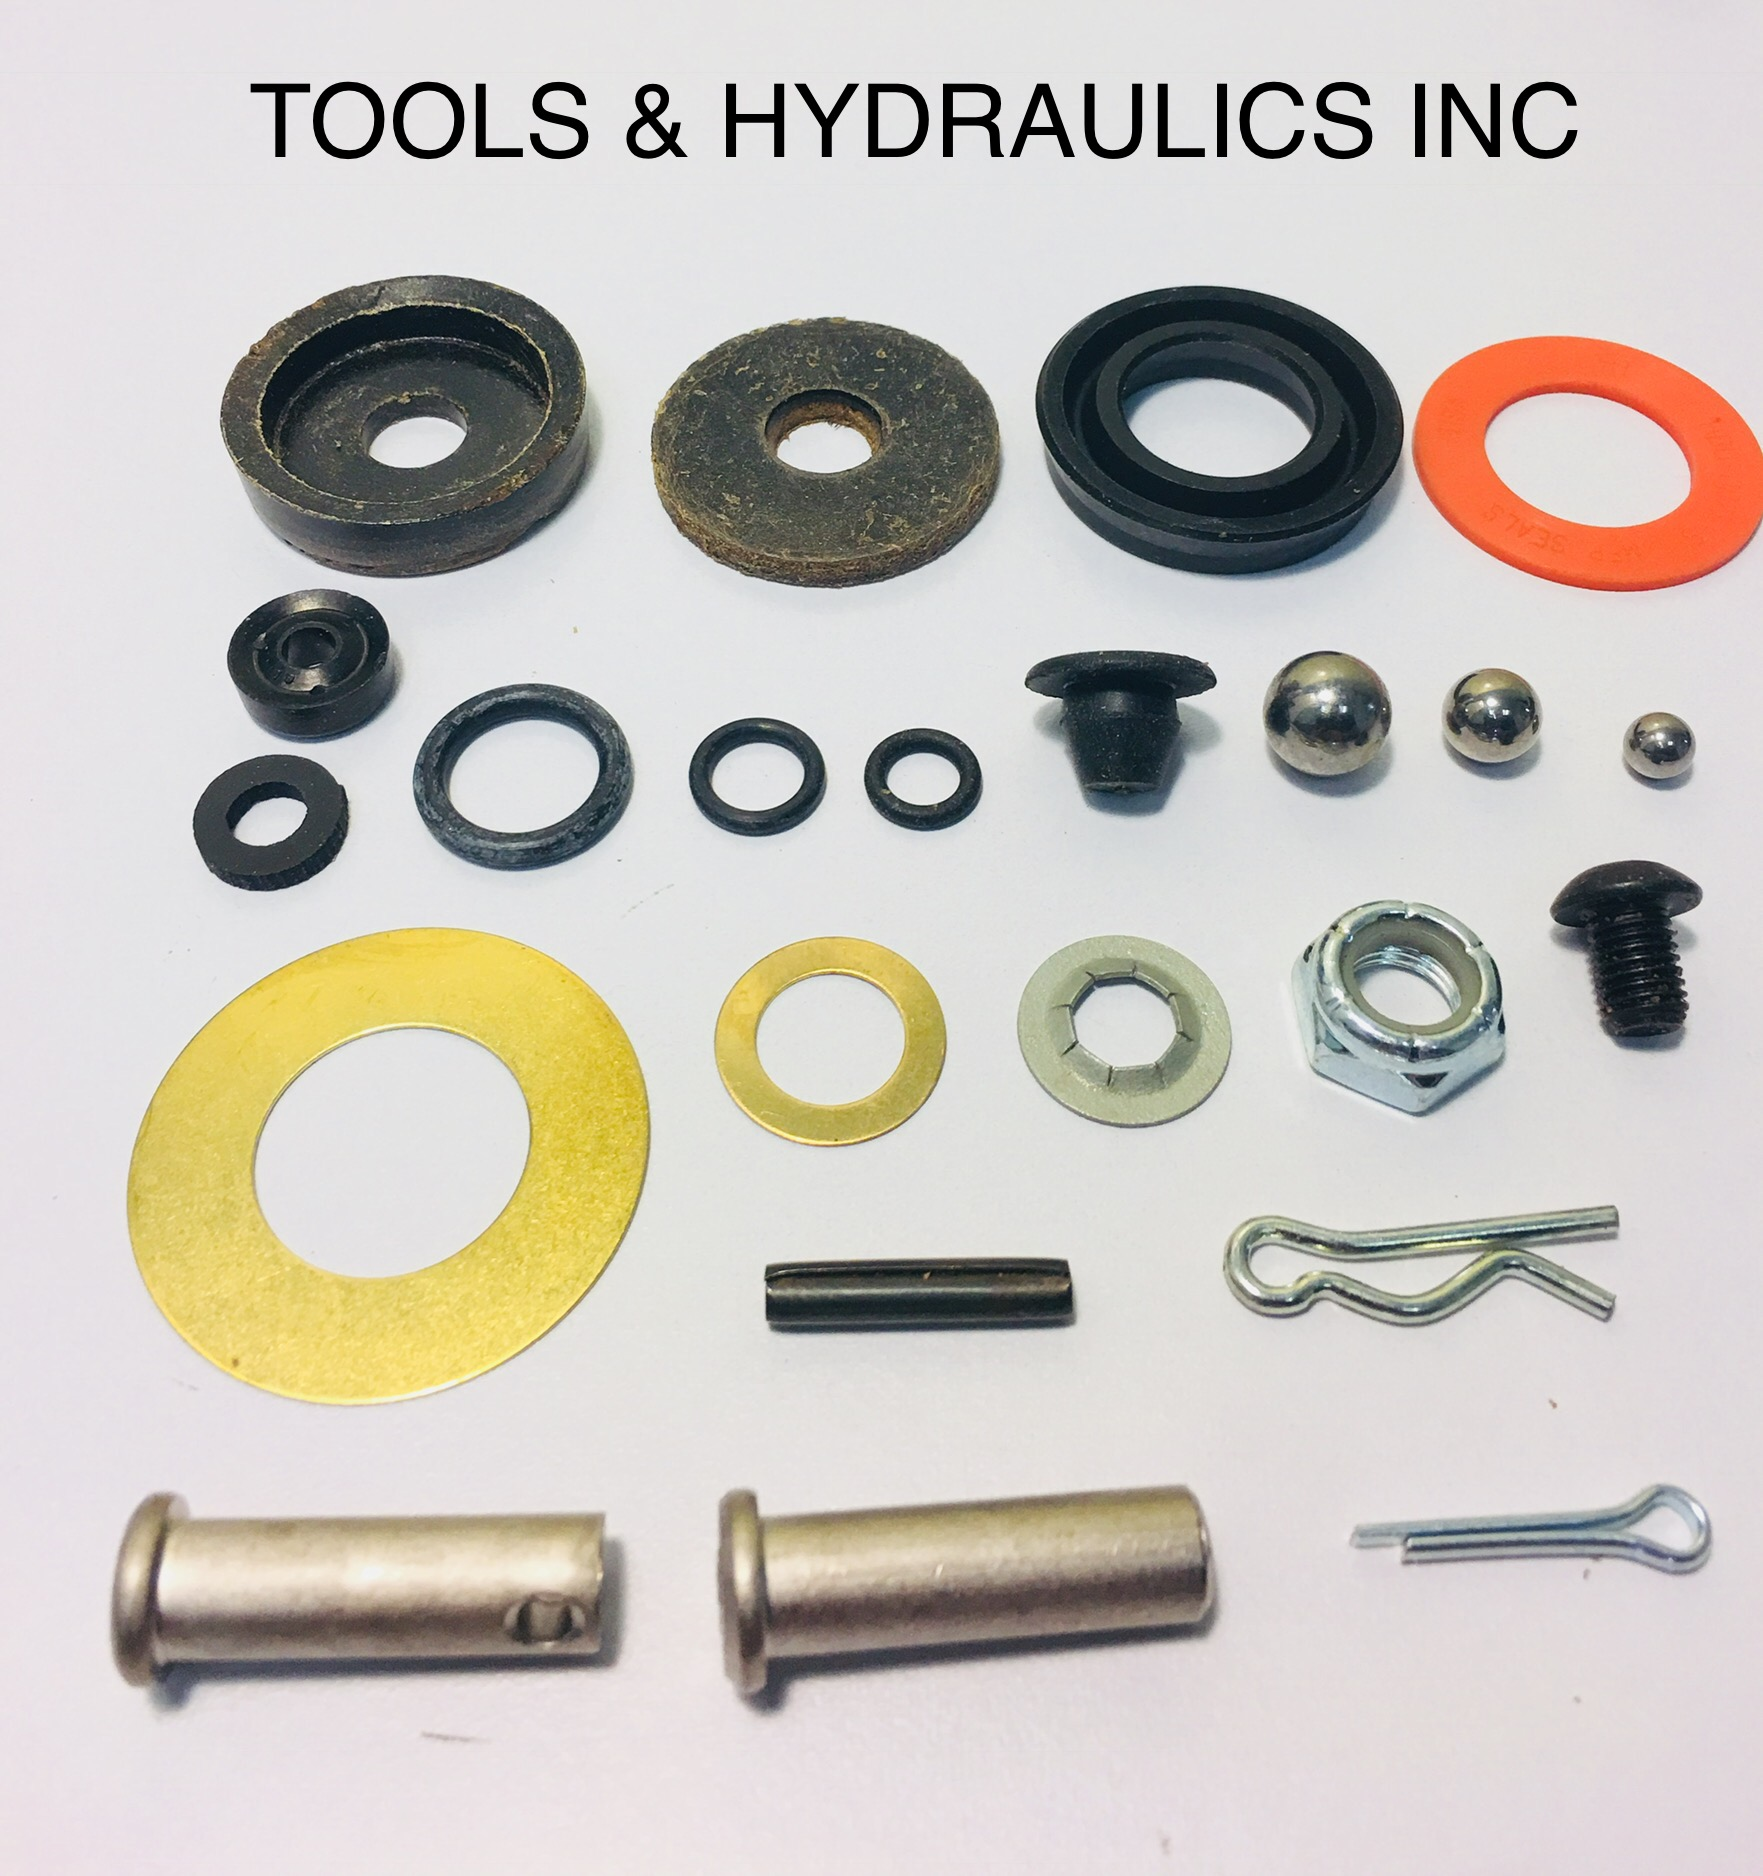 Fleet Napa Jack Repair Kits Hydraulic Floor Parts Diagram 14001 Kit2600